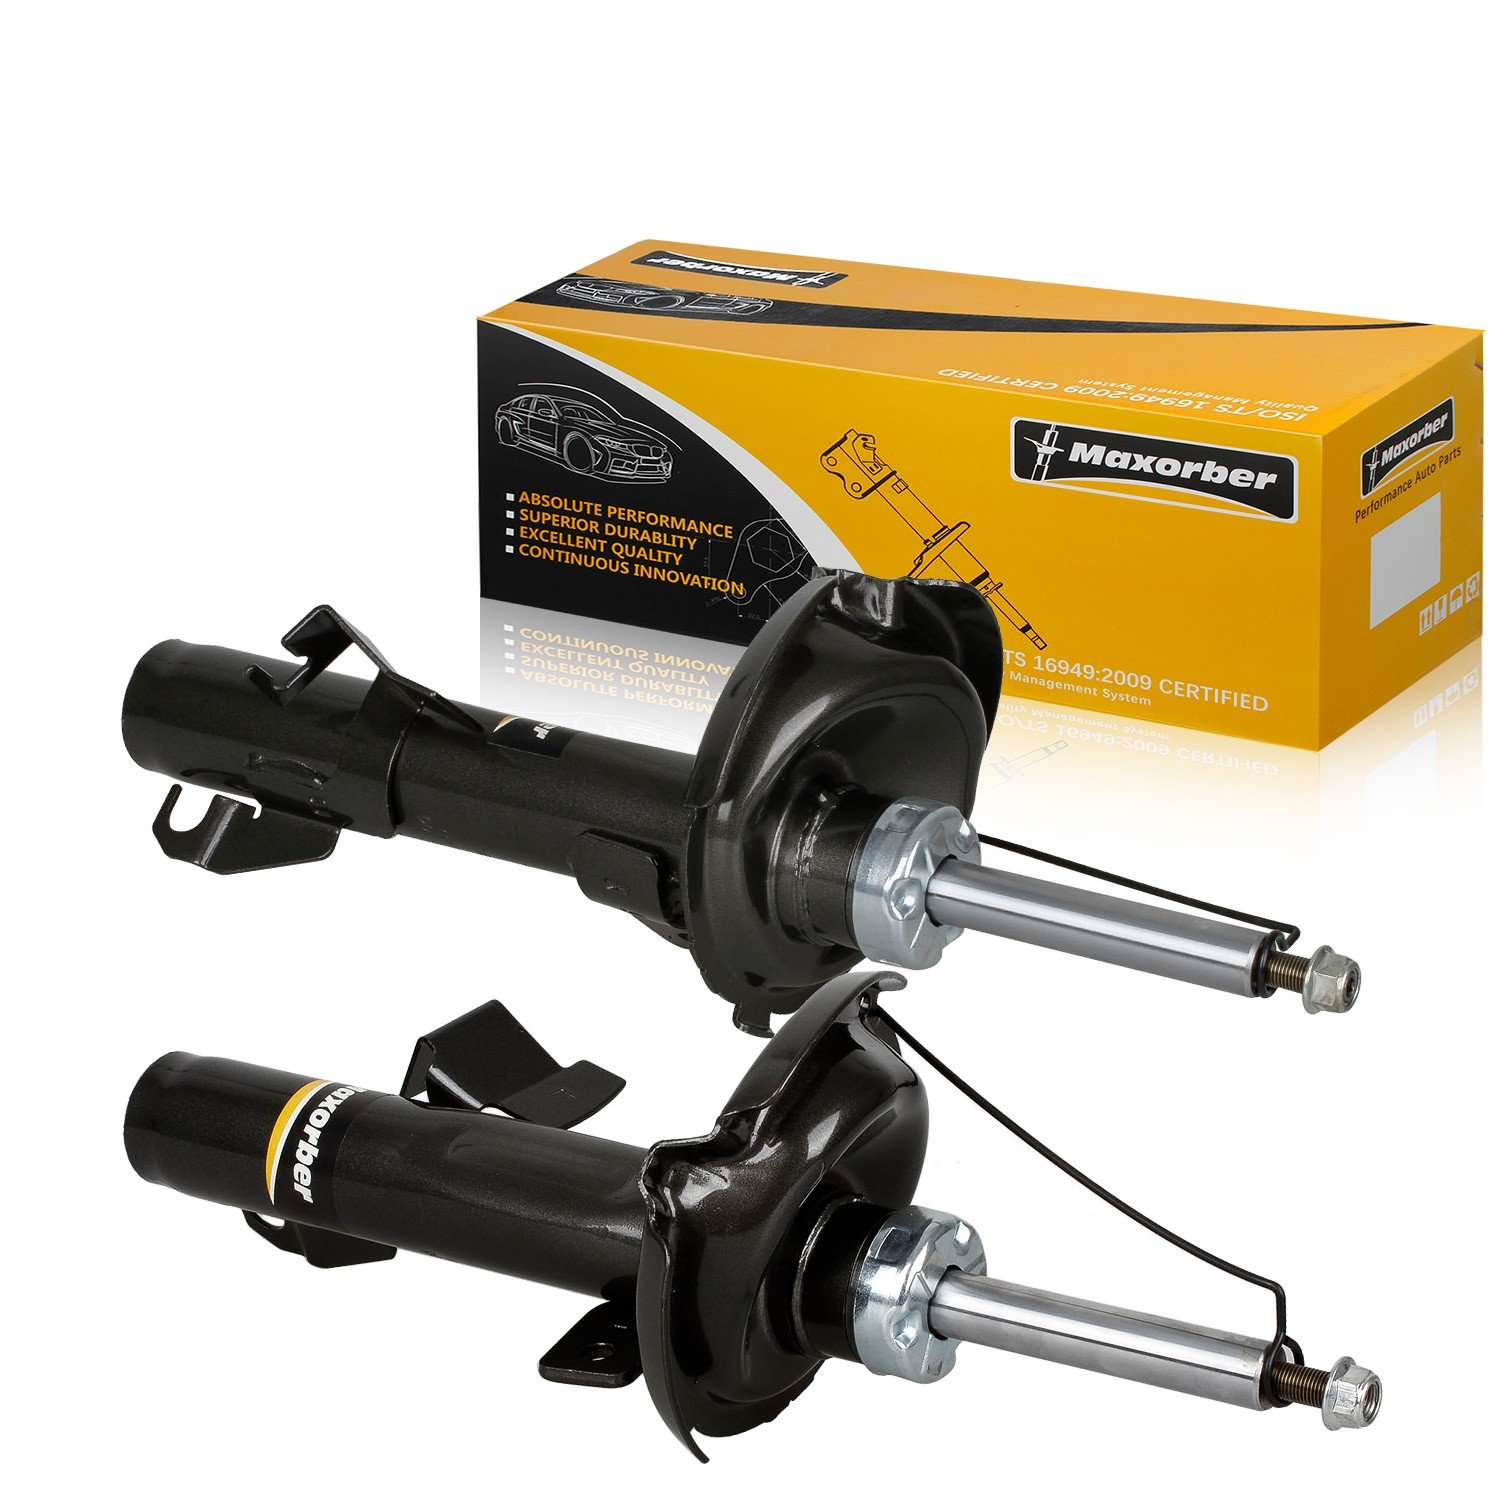 Maxorber Shocks Struts Absorber Front Set Compatible with Volvo C30 2008-2012 Replacement for Volvo S40 V50 04-11 Replacement for Volvo C70 06-13 Shock Absorber 334843 334842 1914842 1914843